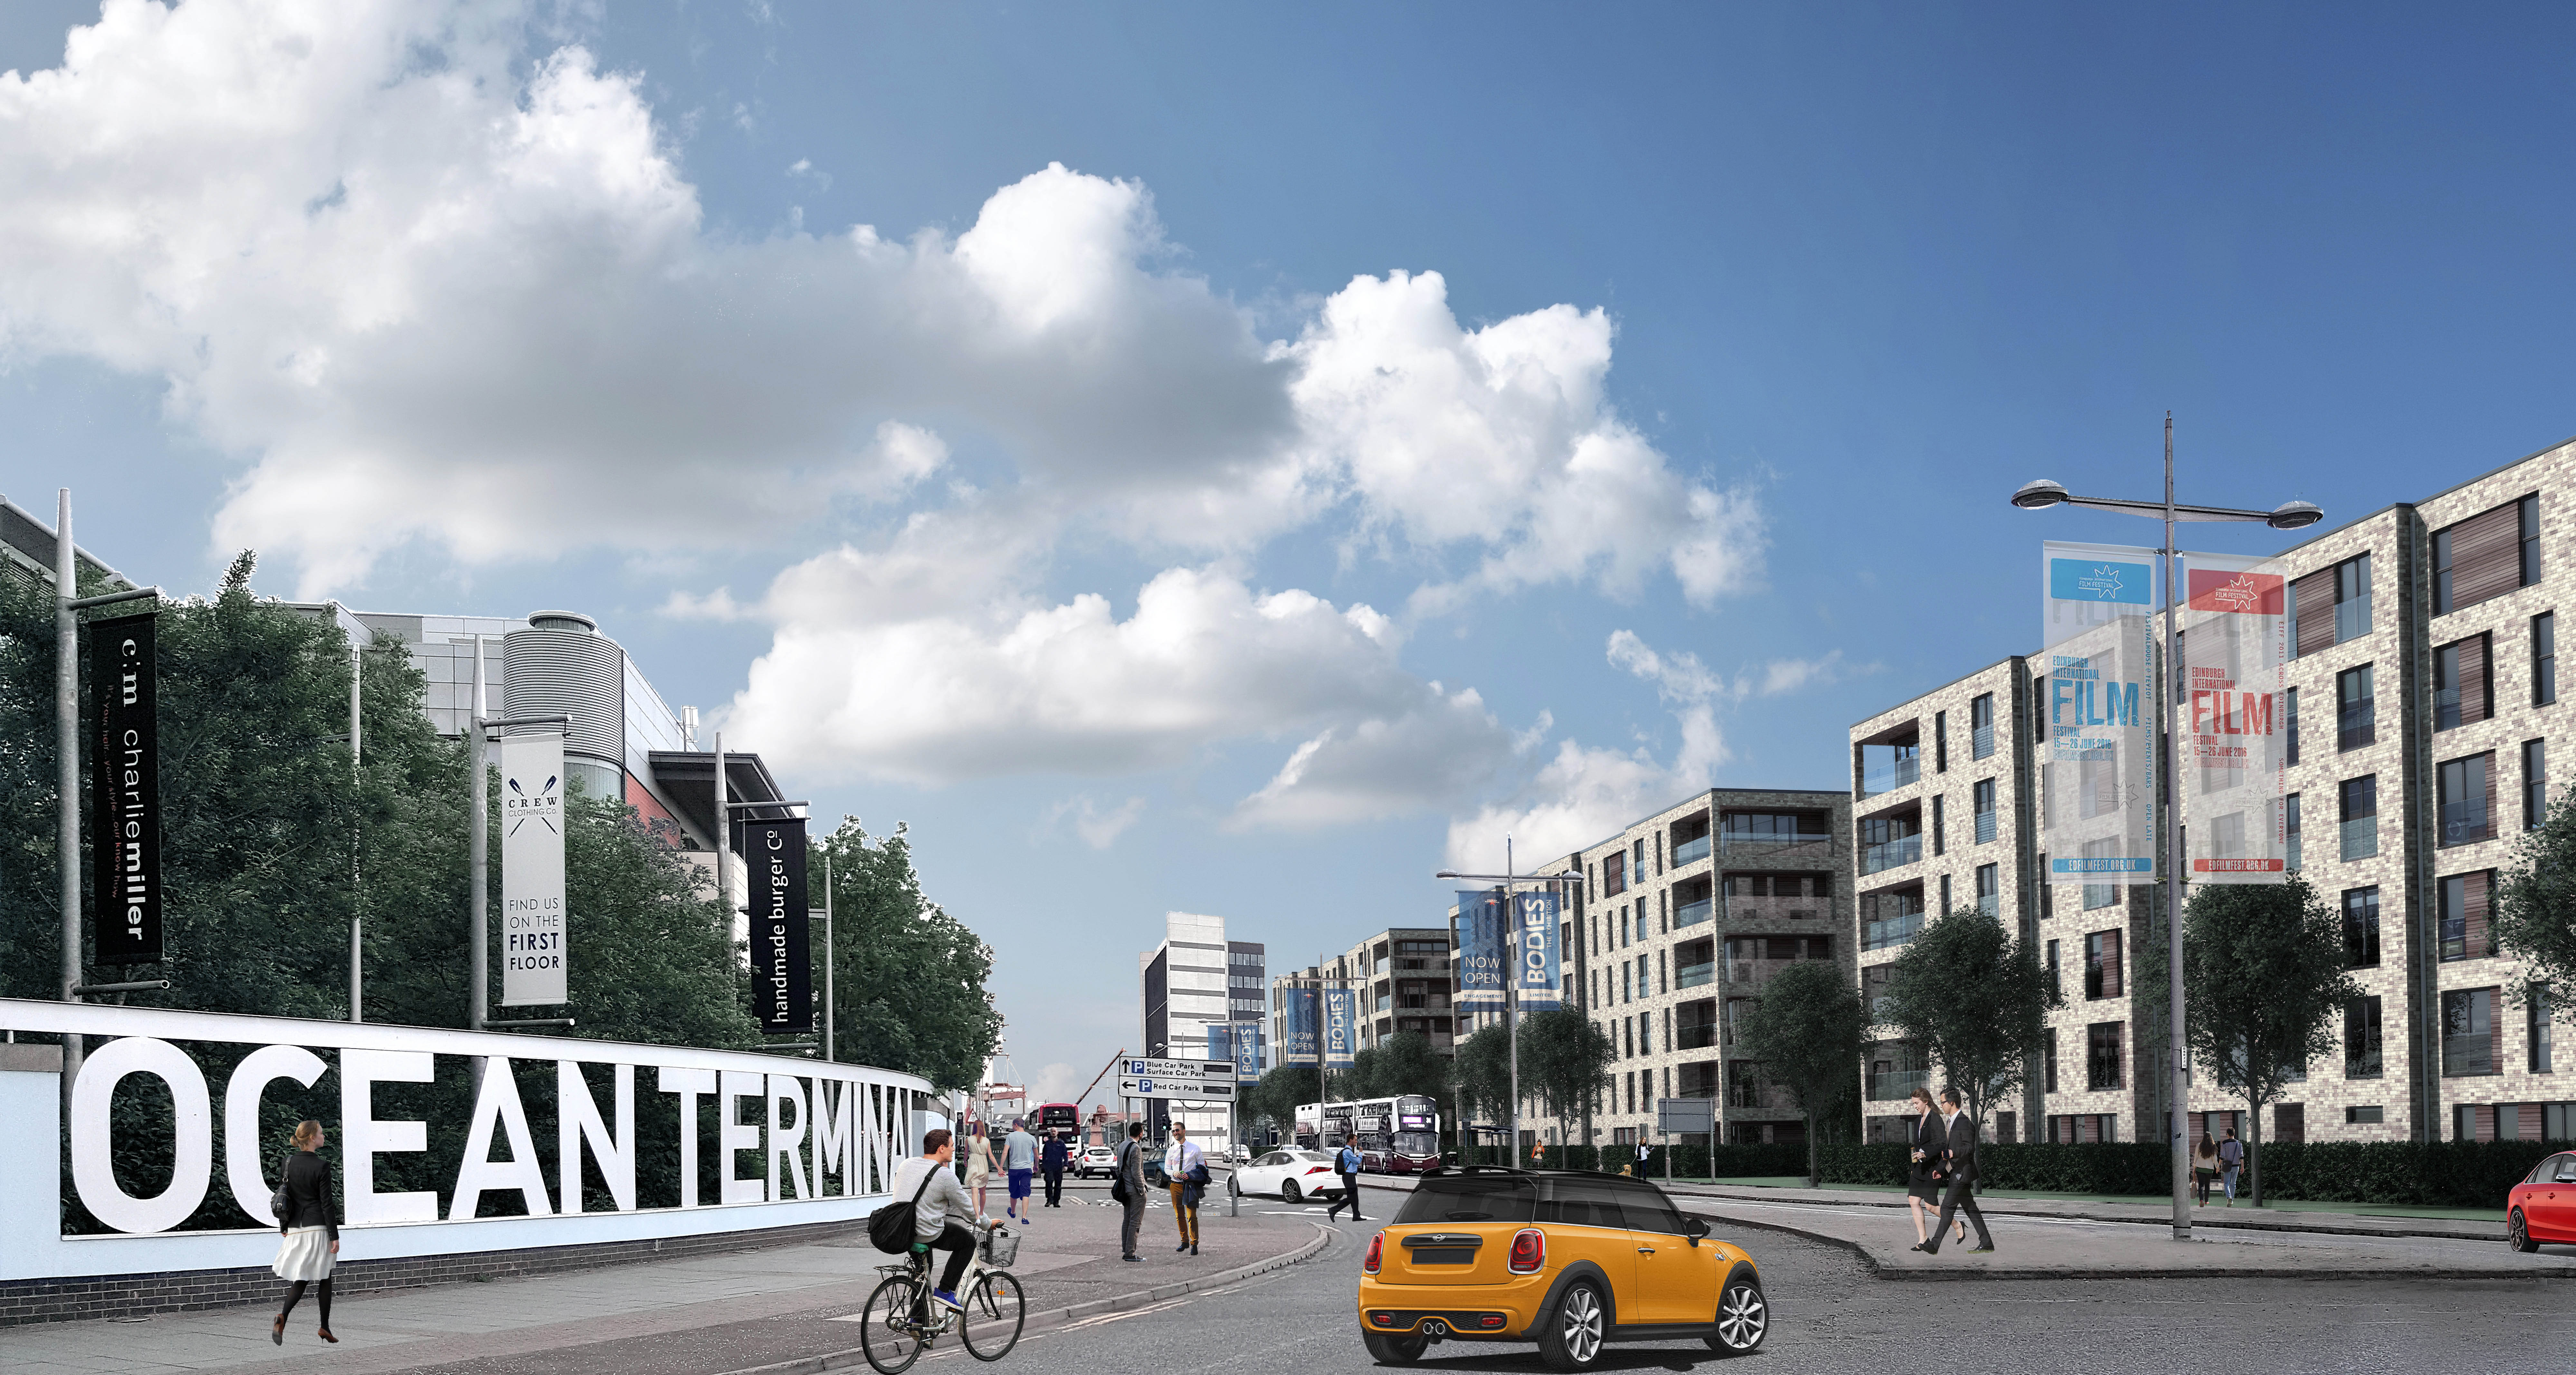 Artis impression from a planning PR campaign for housing development